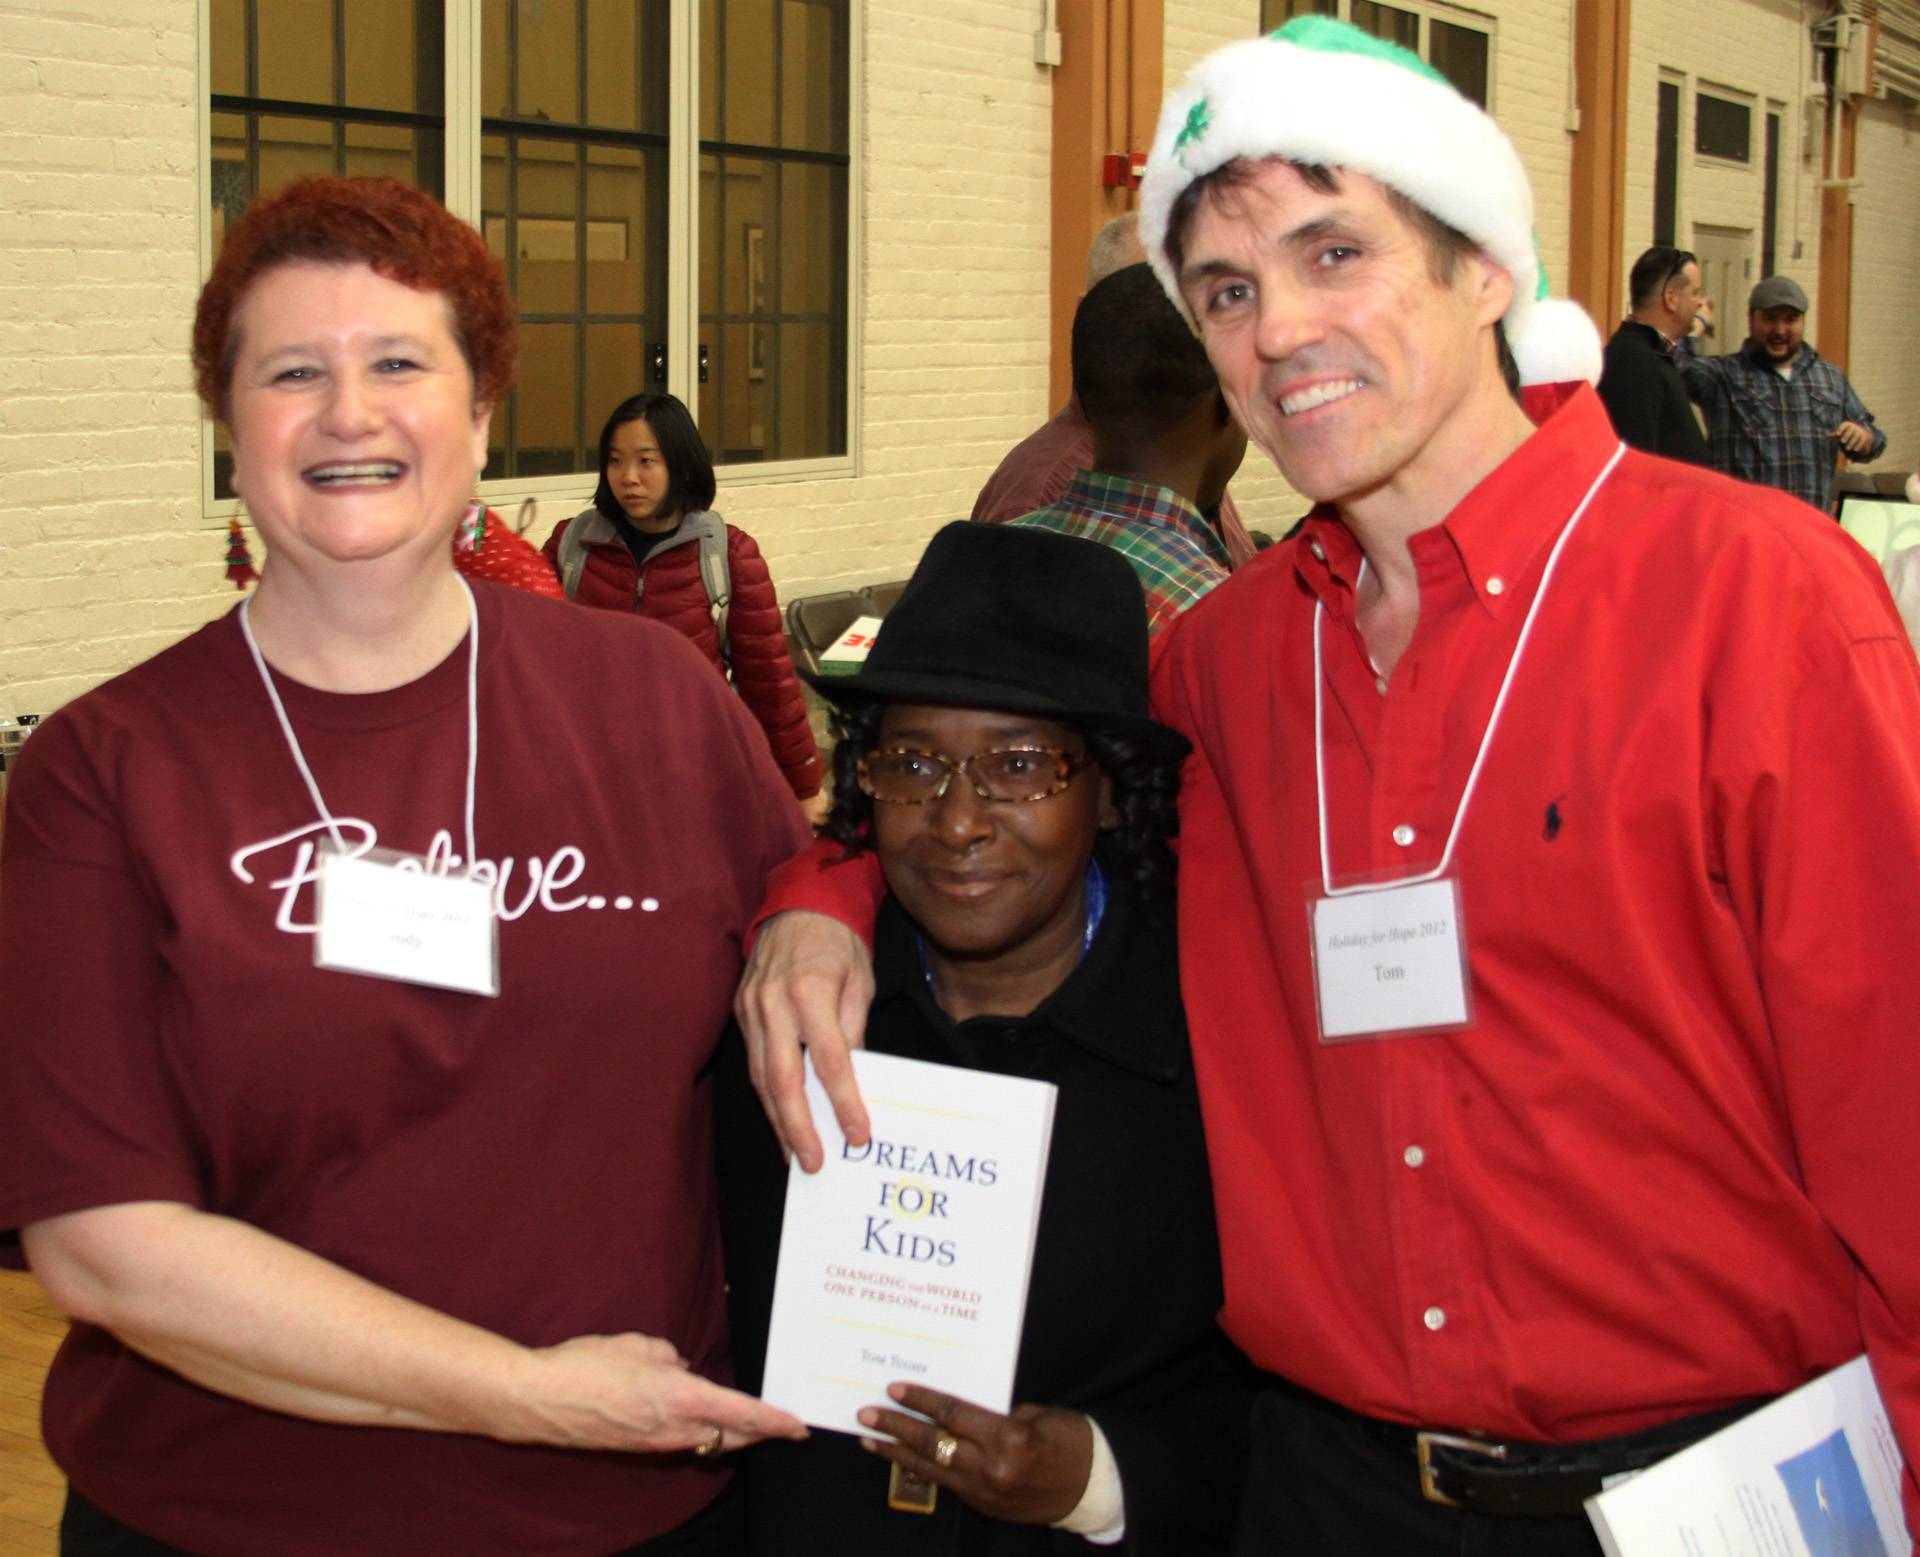 Chiro One Community Outreach Director, Cynthia Barron (left) and Dreams For Kids Founder, Tom Tuohy (right) with Clara Kirk of Clara's House Shelter, where the very first Holiday for Hope took place 24 years ago.